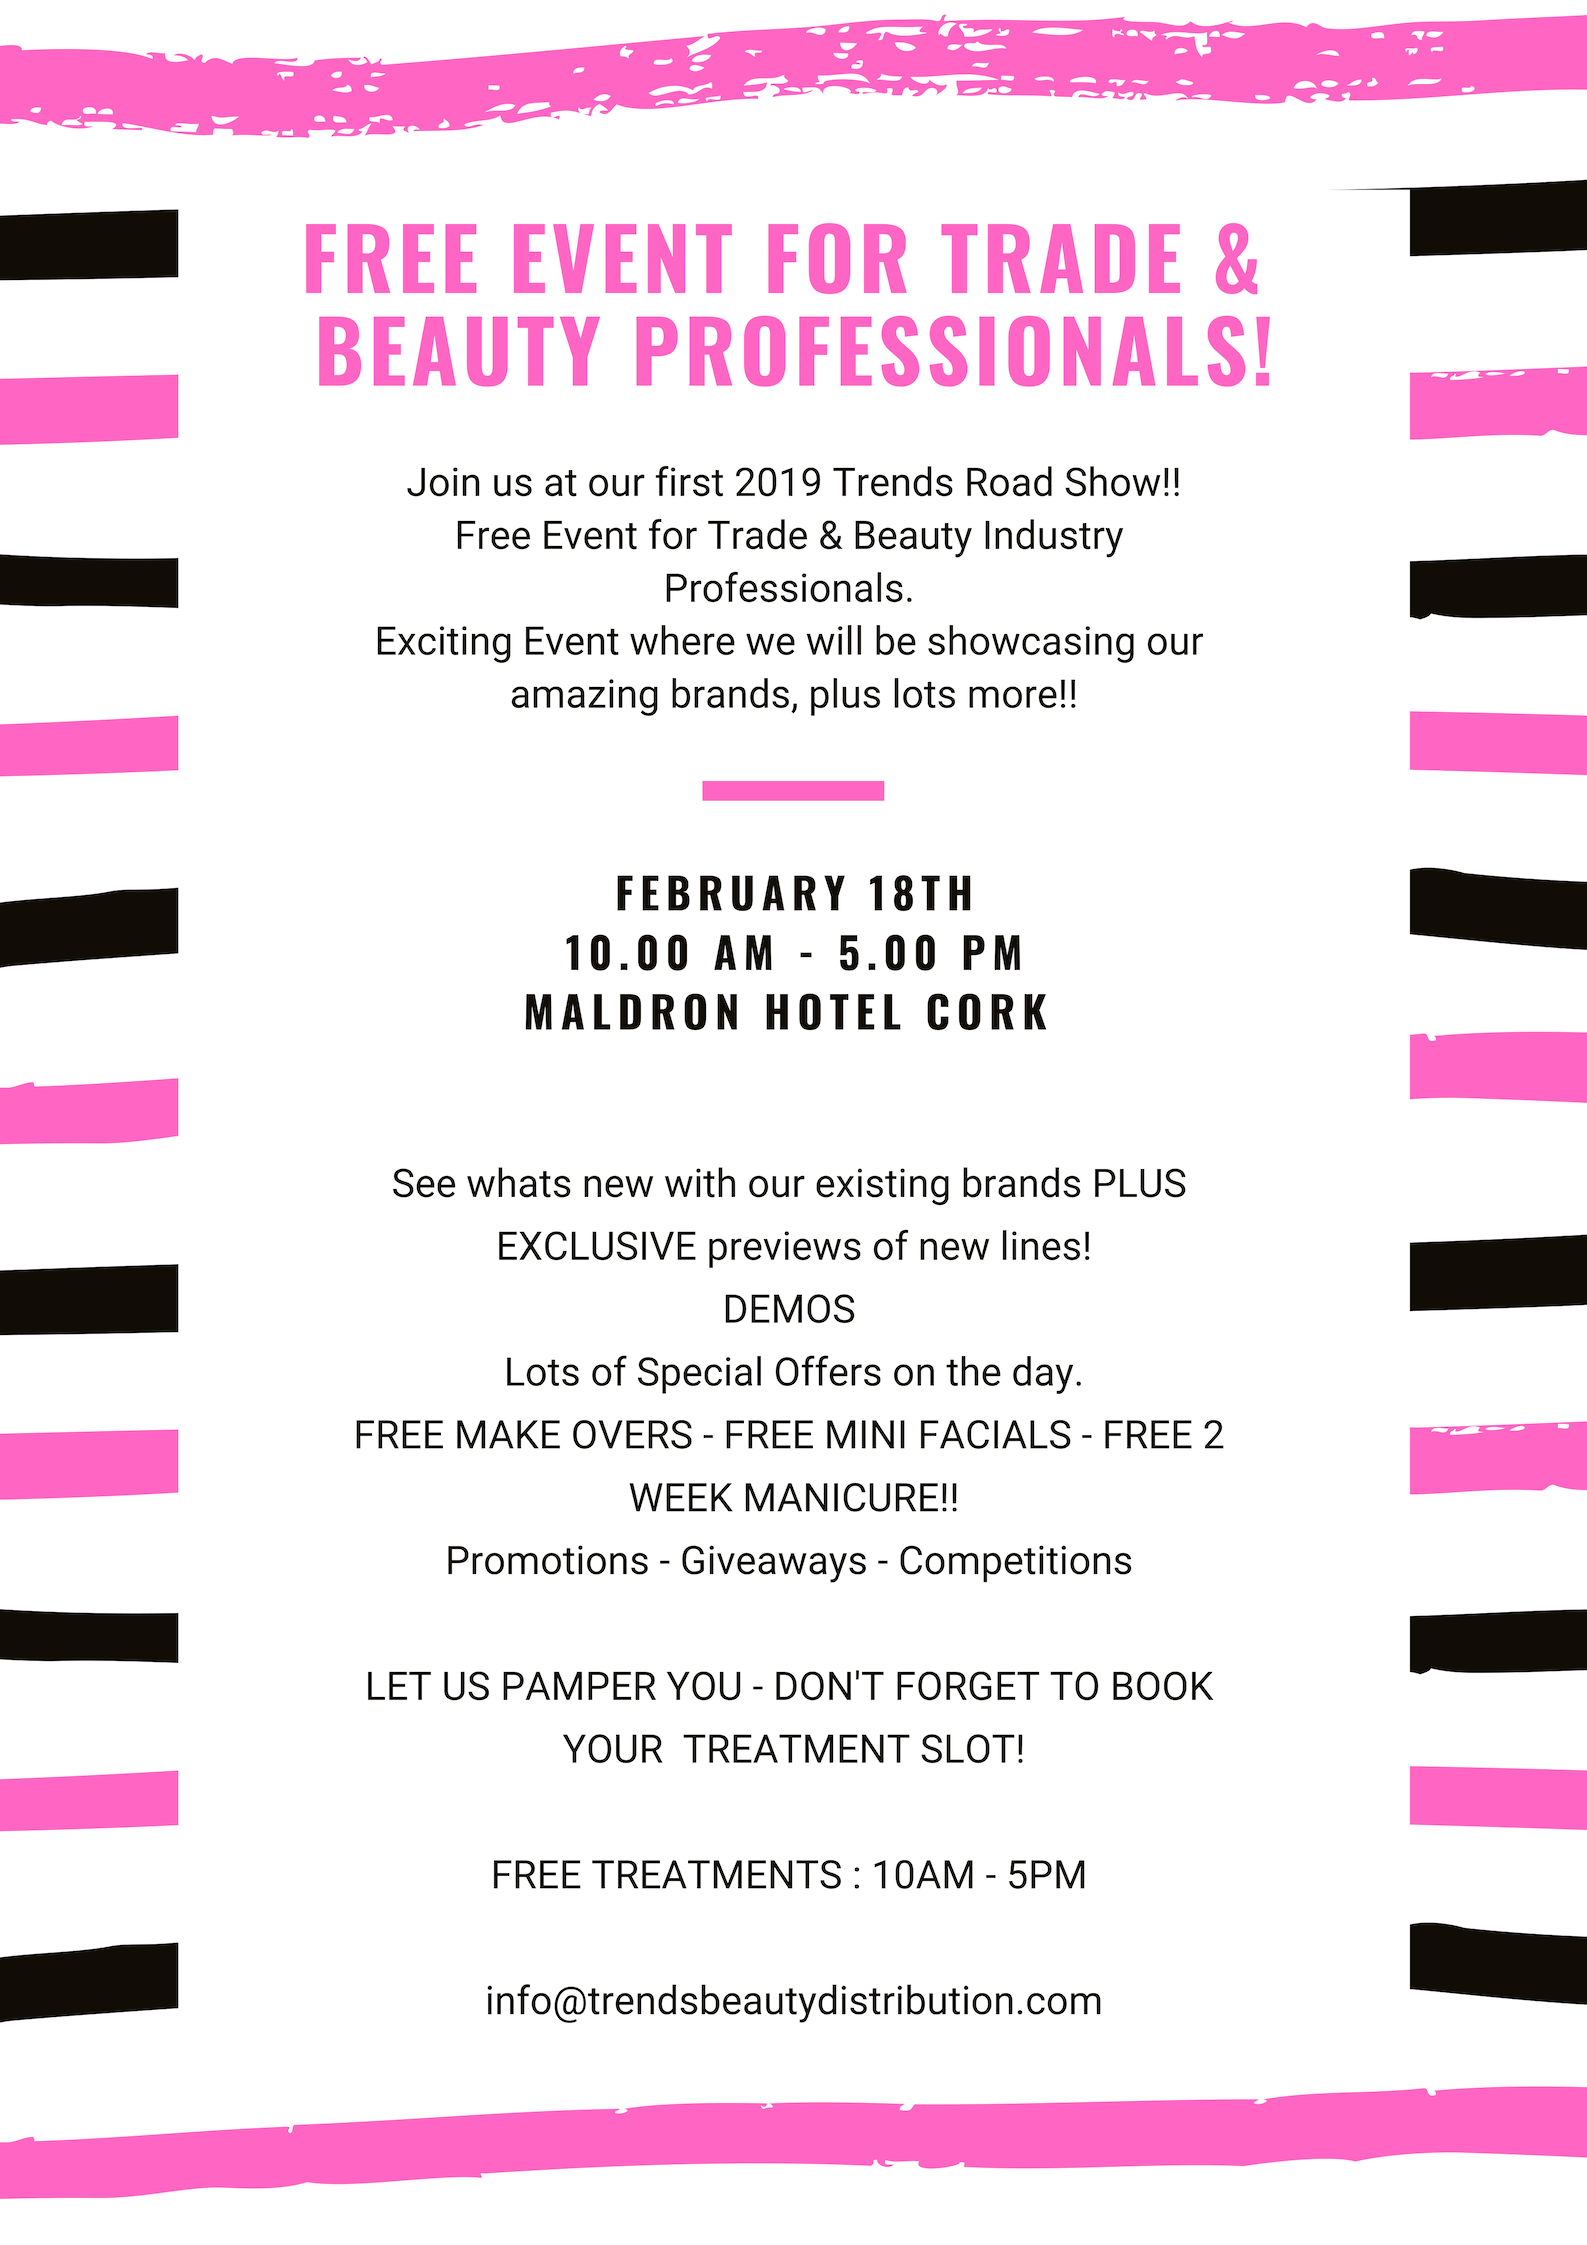 TRENDS BEAUTY CORK ROAD SHOW - FUN FREE EVENT (6).png